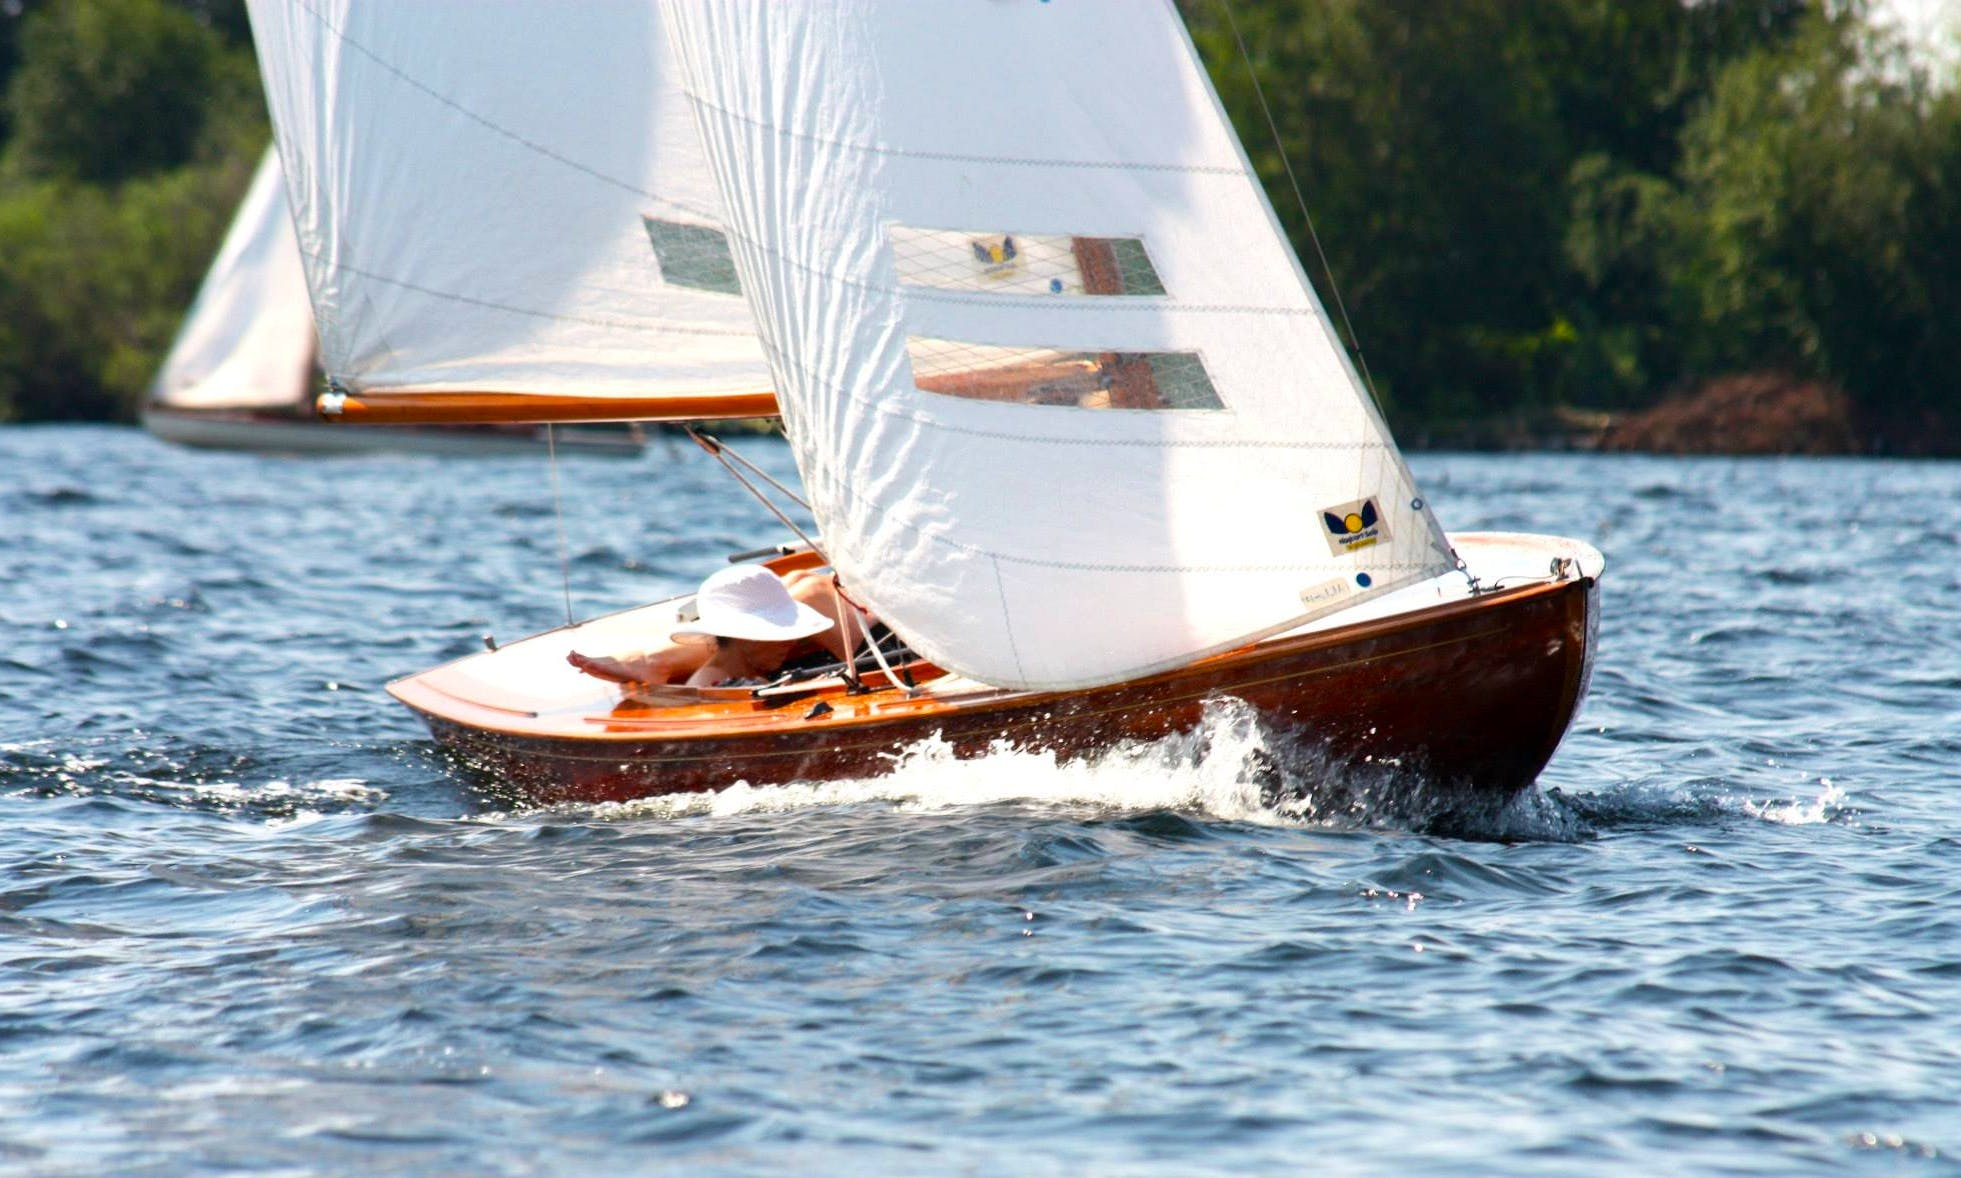 Daysailer Boat Rental in Abcoude, Netherlands